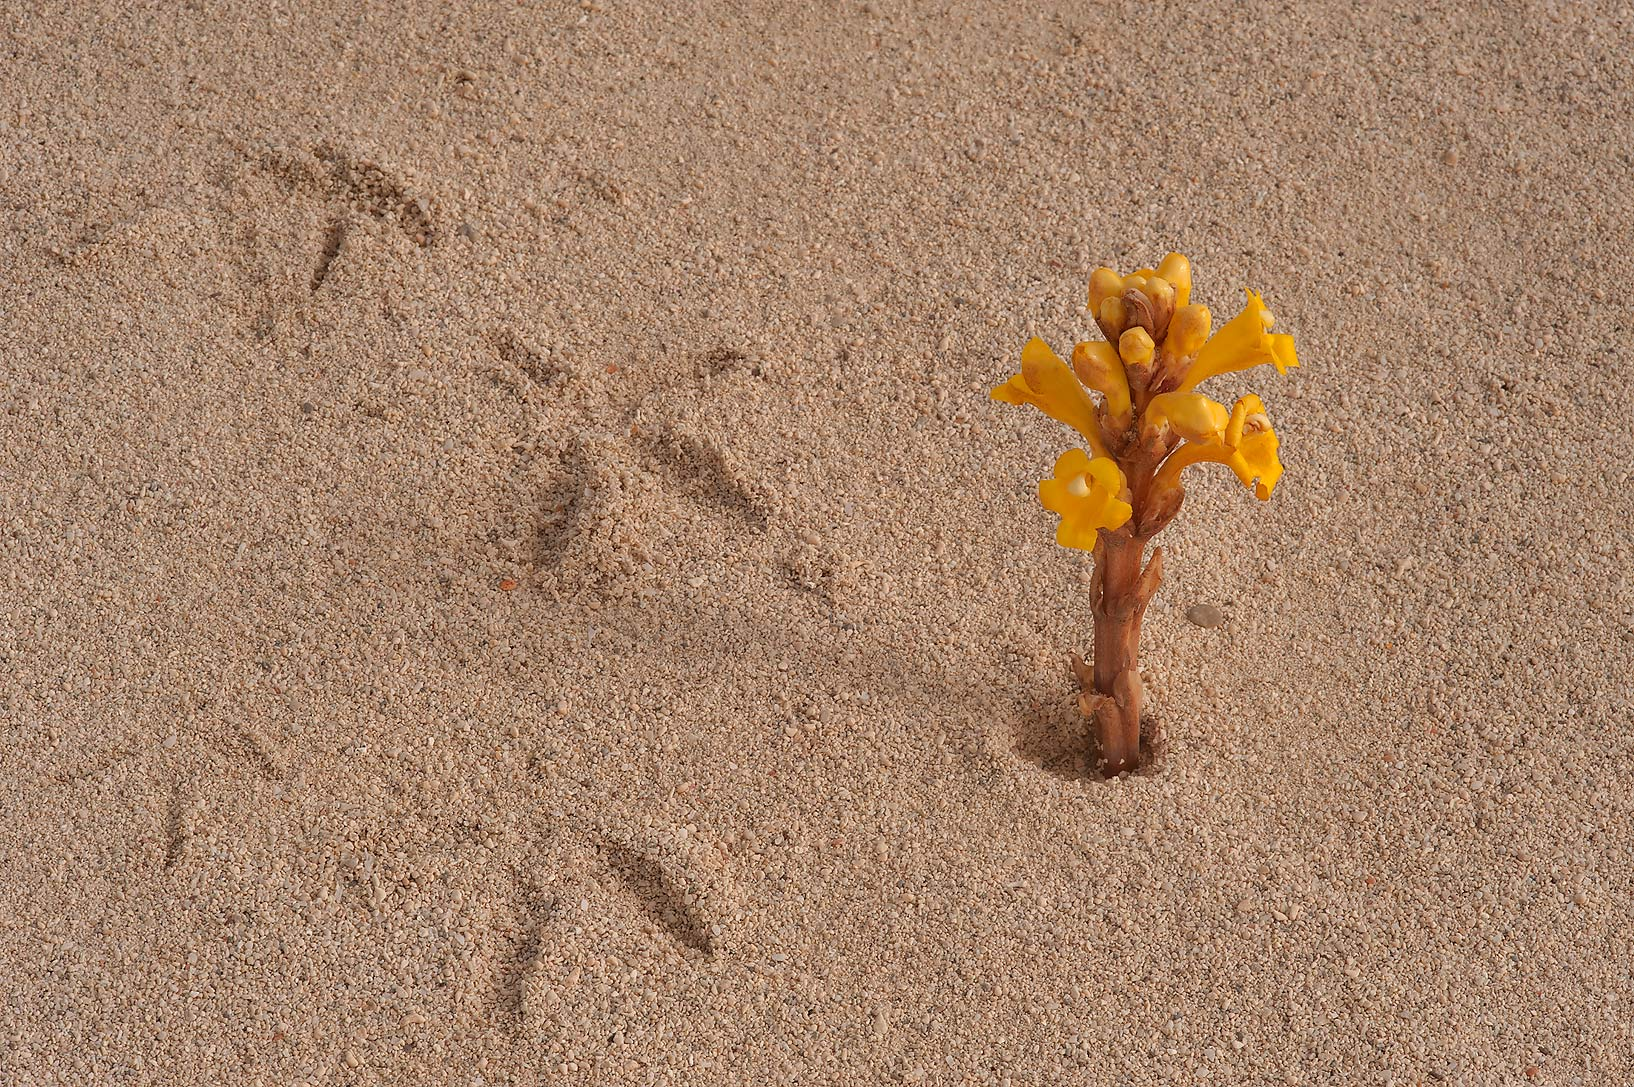 Bird tracks and a flower of Cistanche tubulosa on...in Madinat Al Shamal area. Qatar